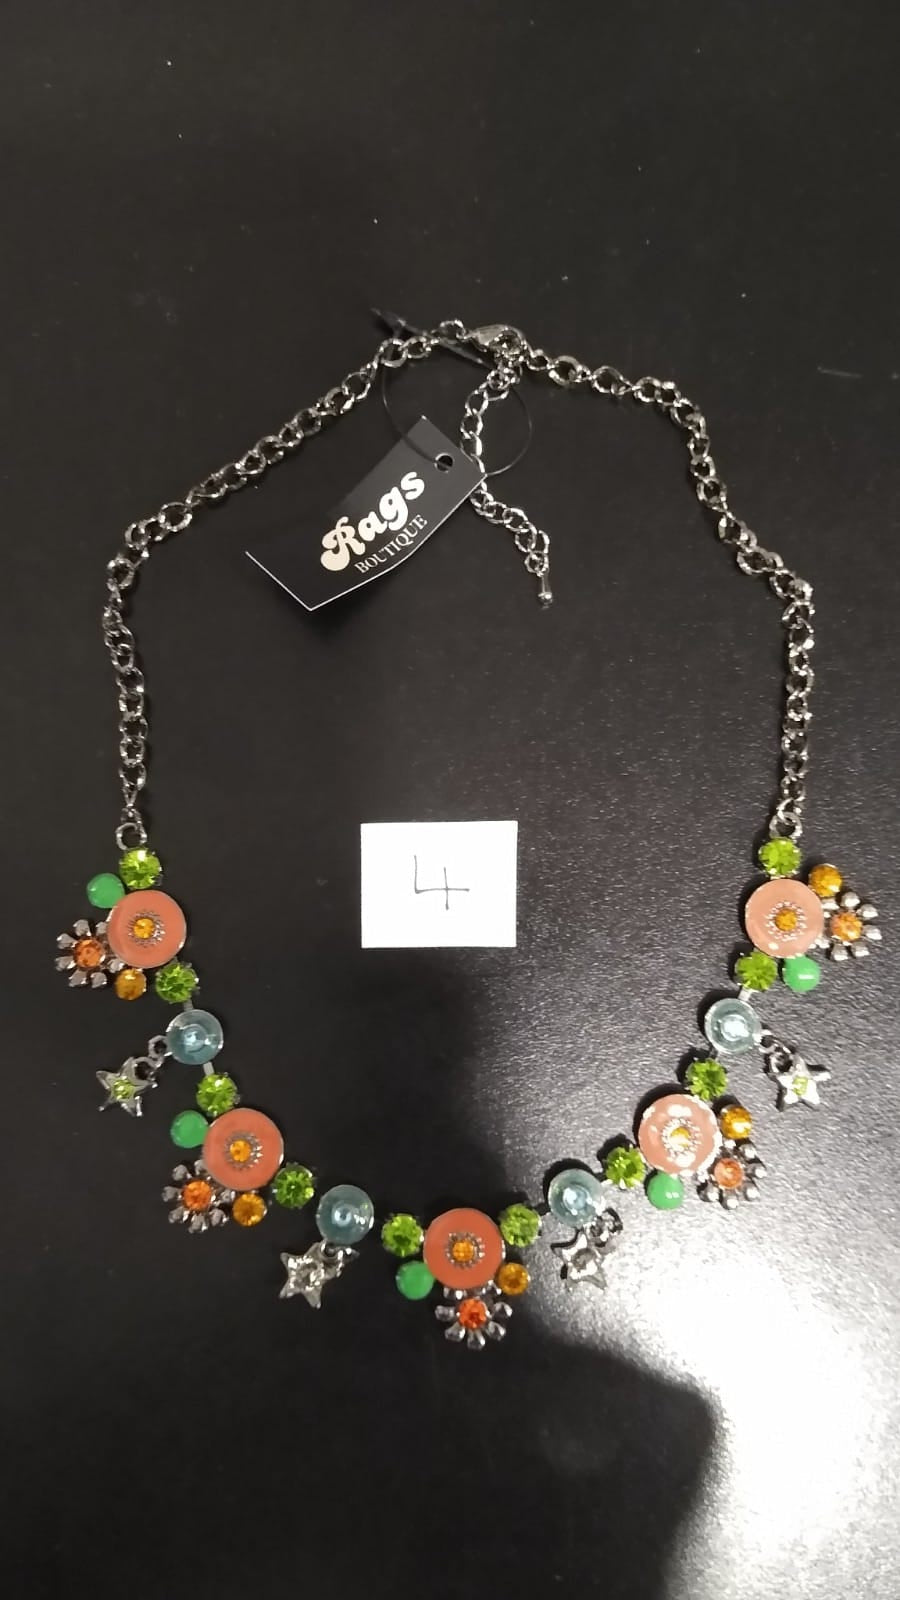 Necklace - Greens/Orange sparkle circles, stars and flowers